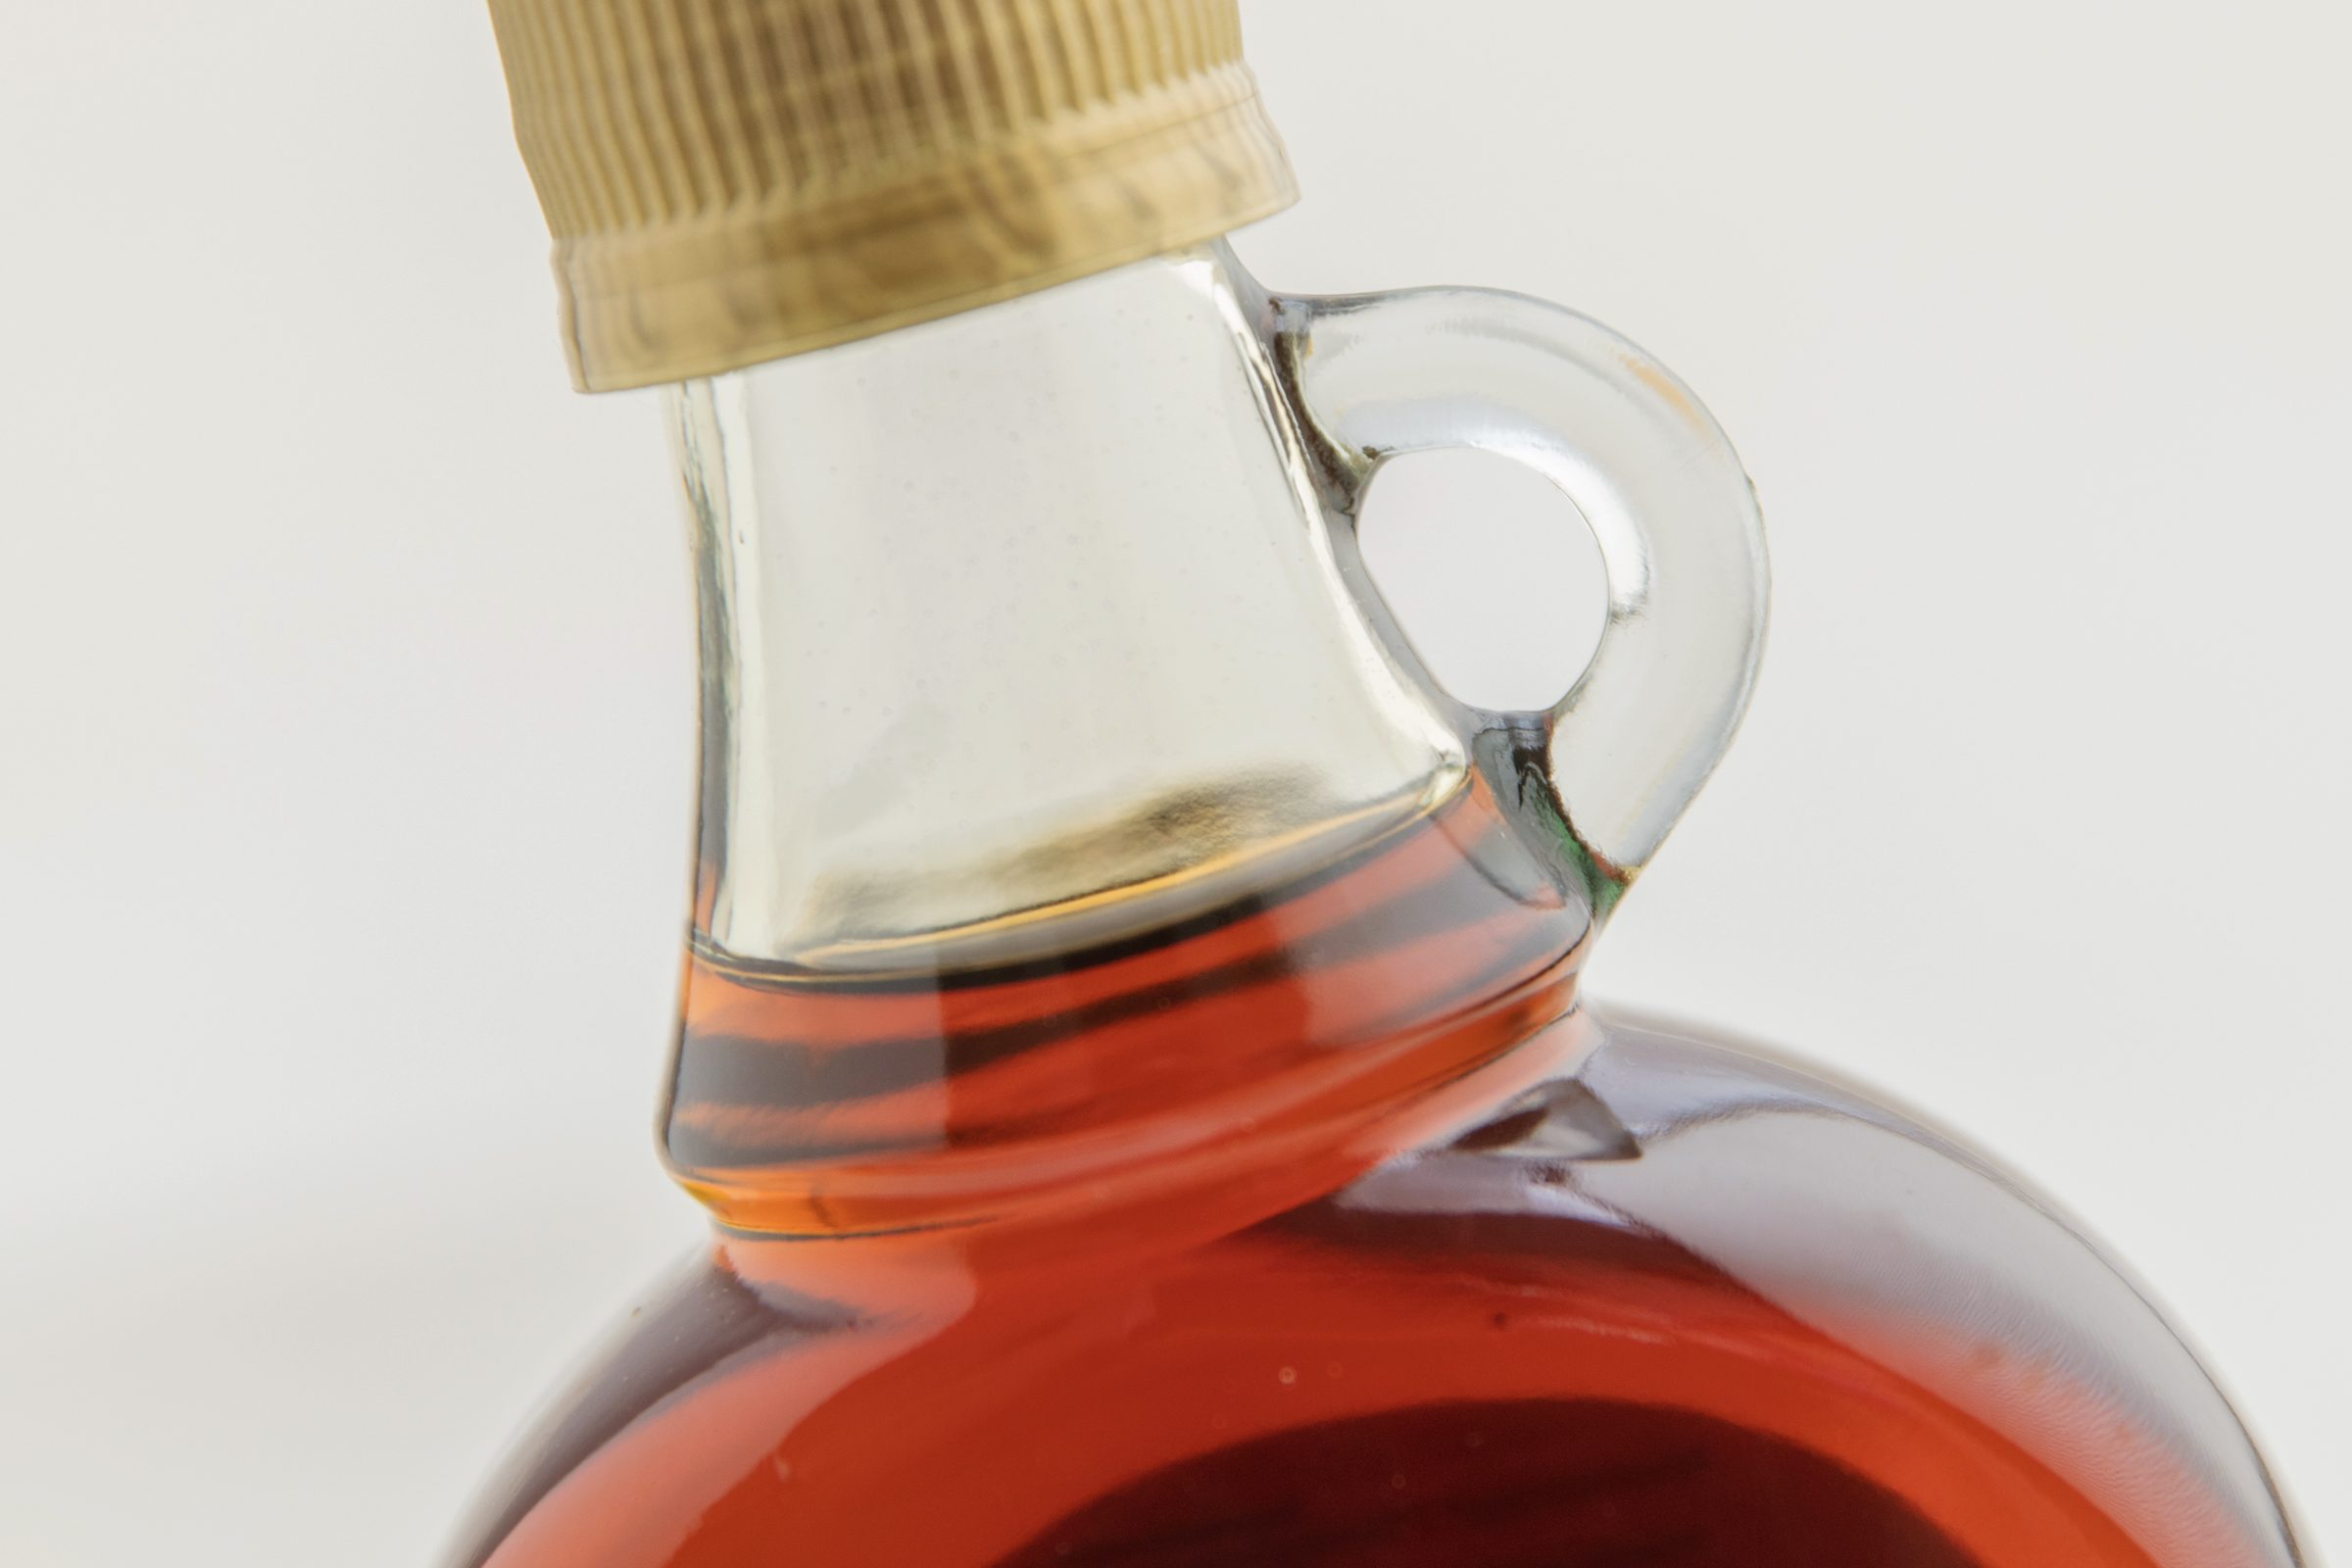 maple syrup bottle close up